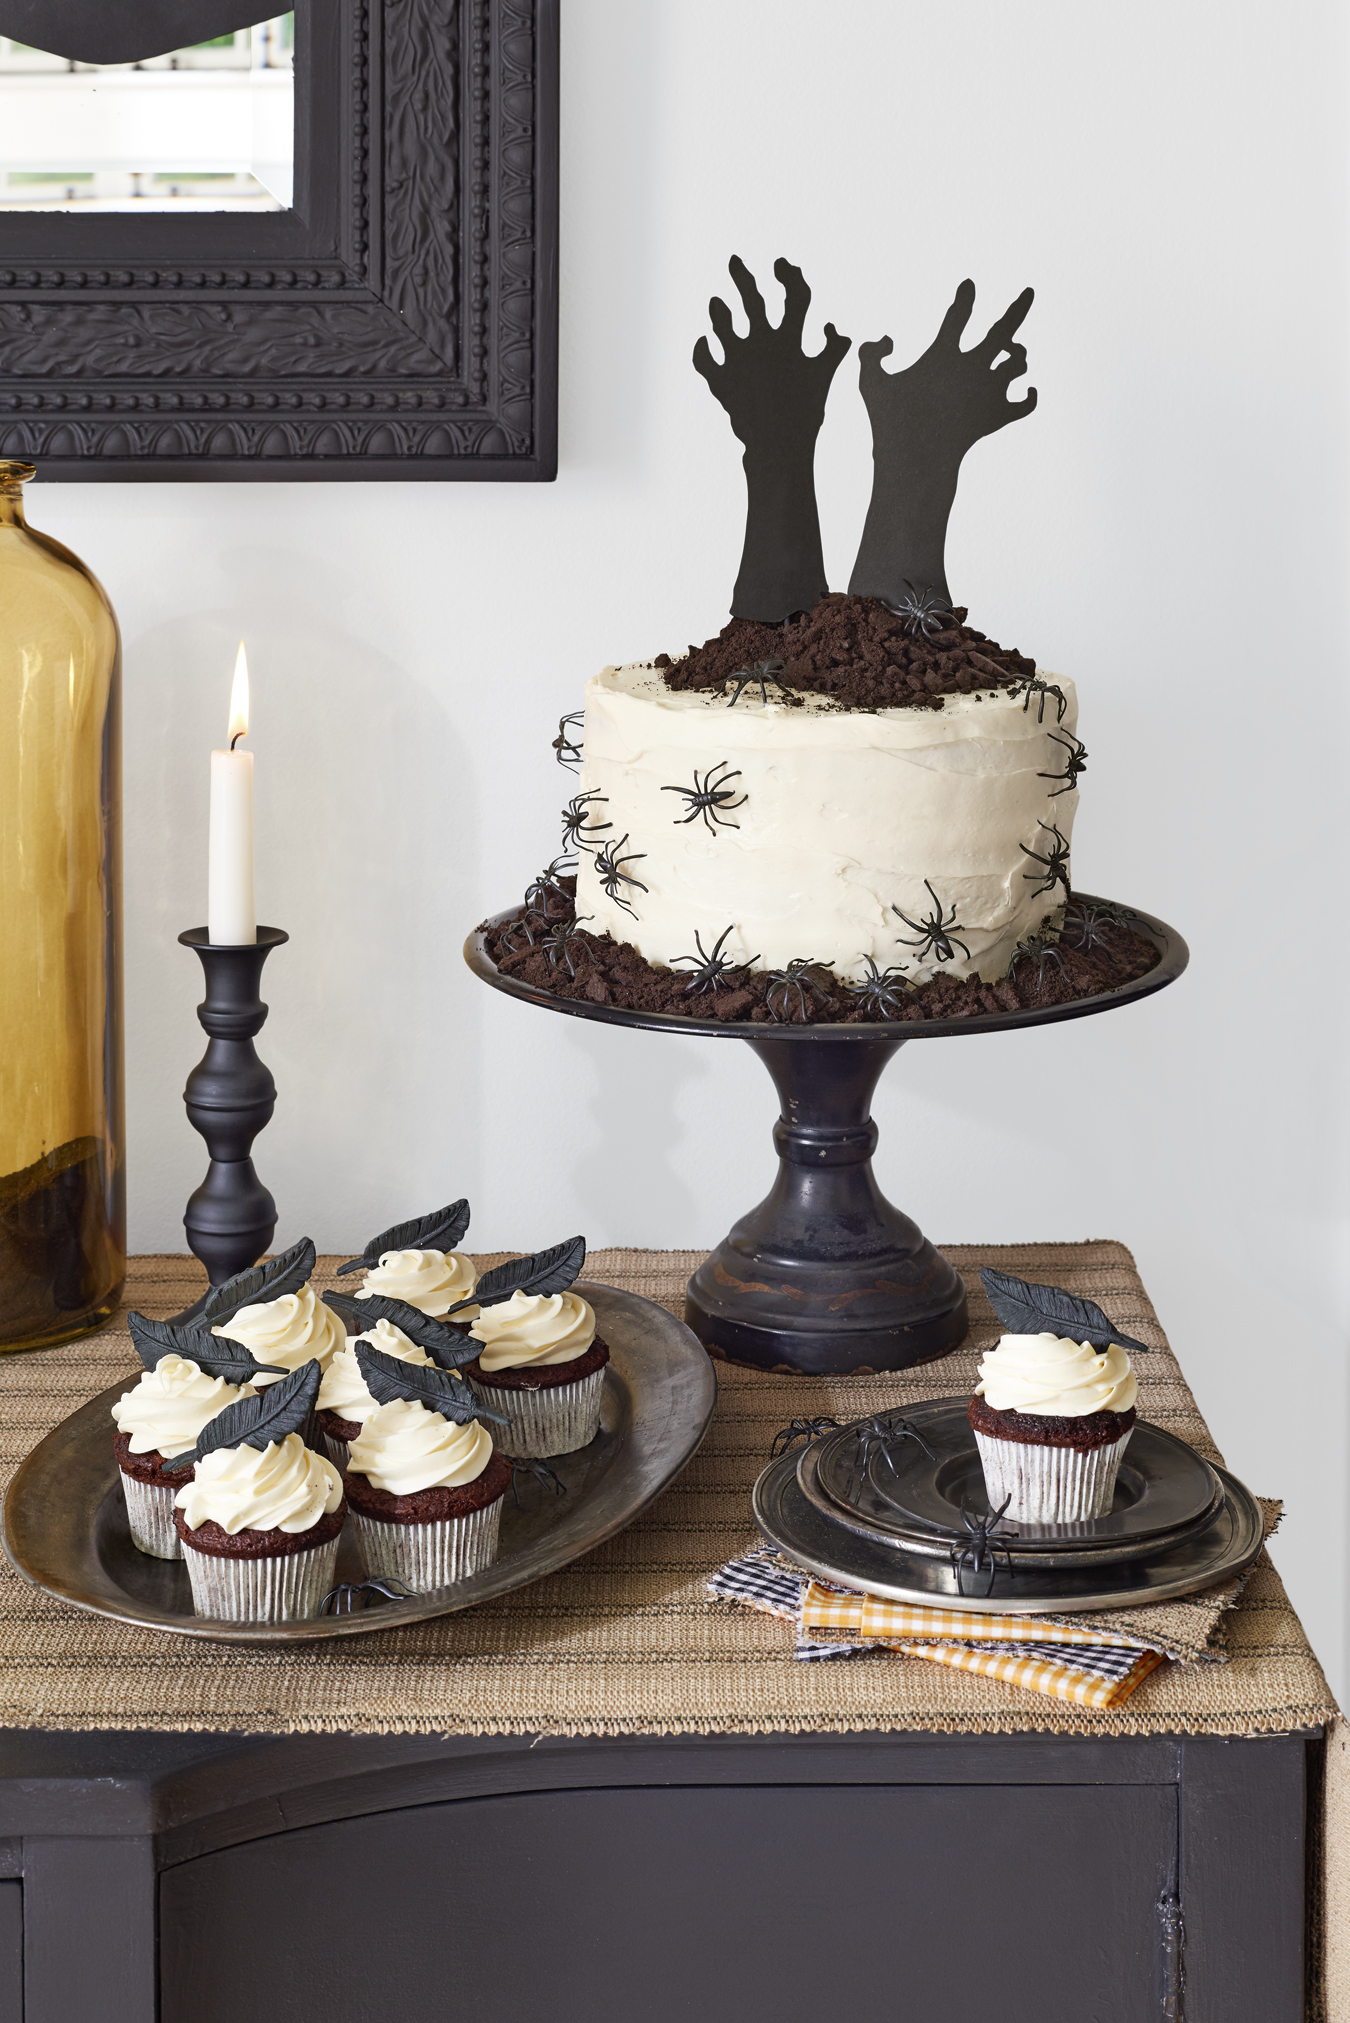 61 easy halloween cakes recipes and halloween cake decorating ideas - Halloween Inspired Cupcakes